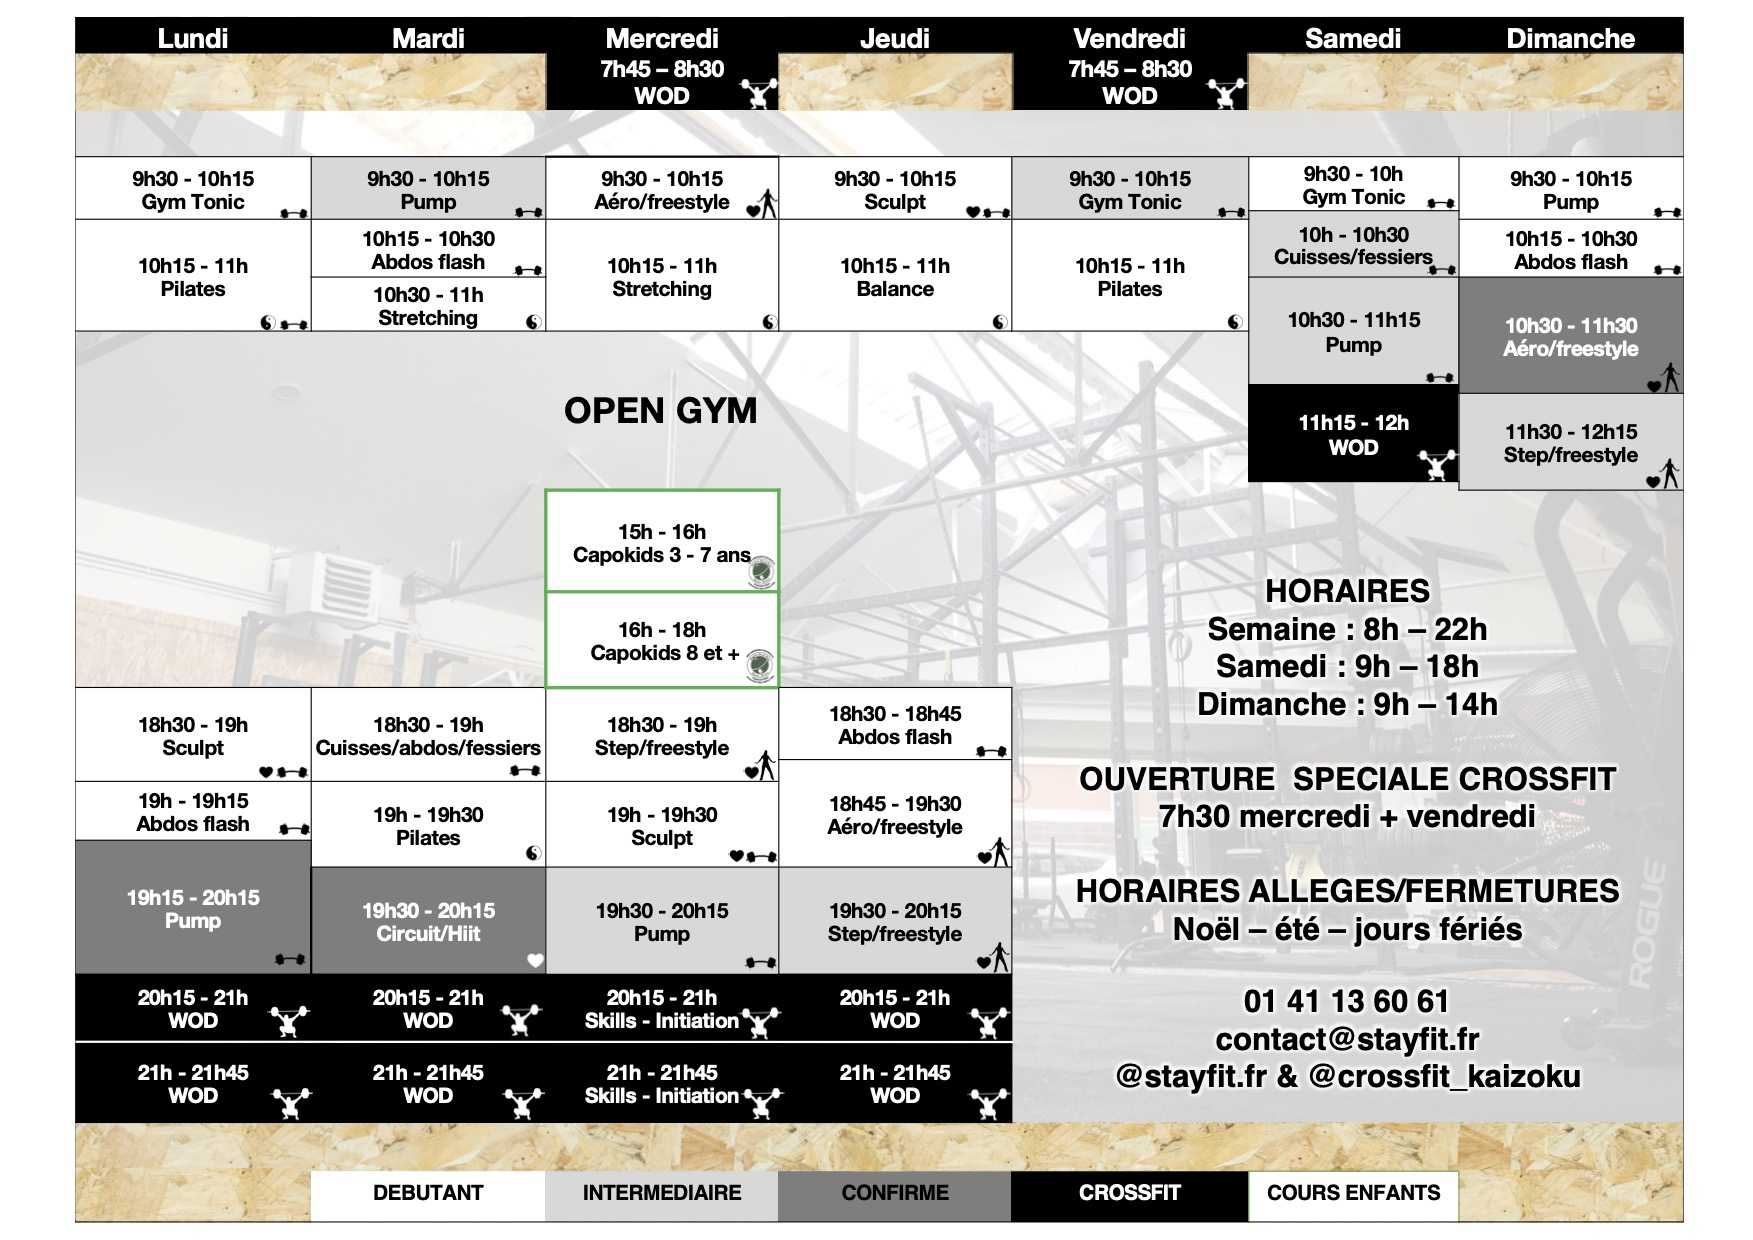 Planning StayFit CrossFit Kaizoku